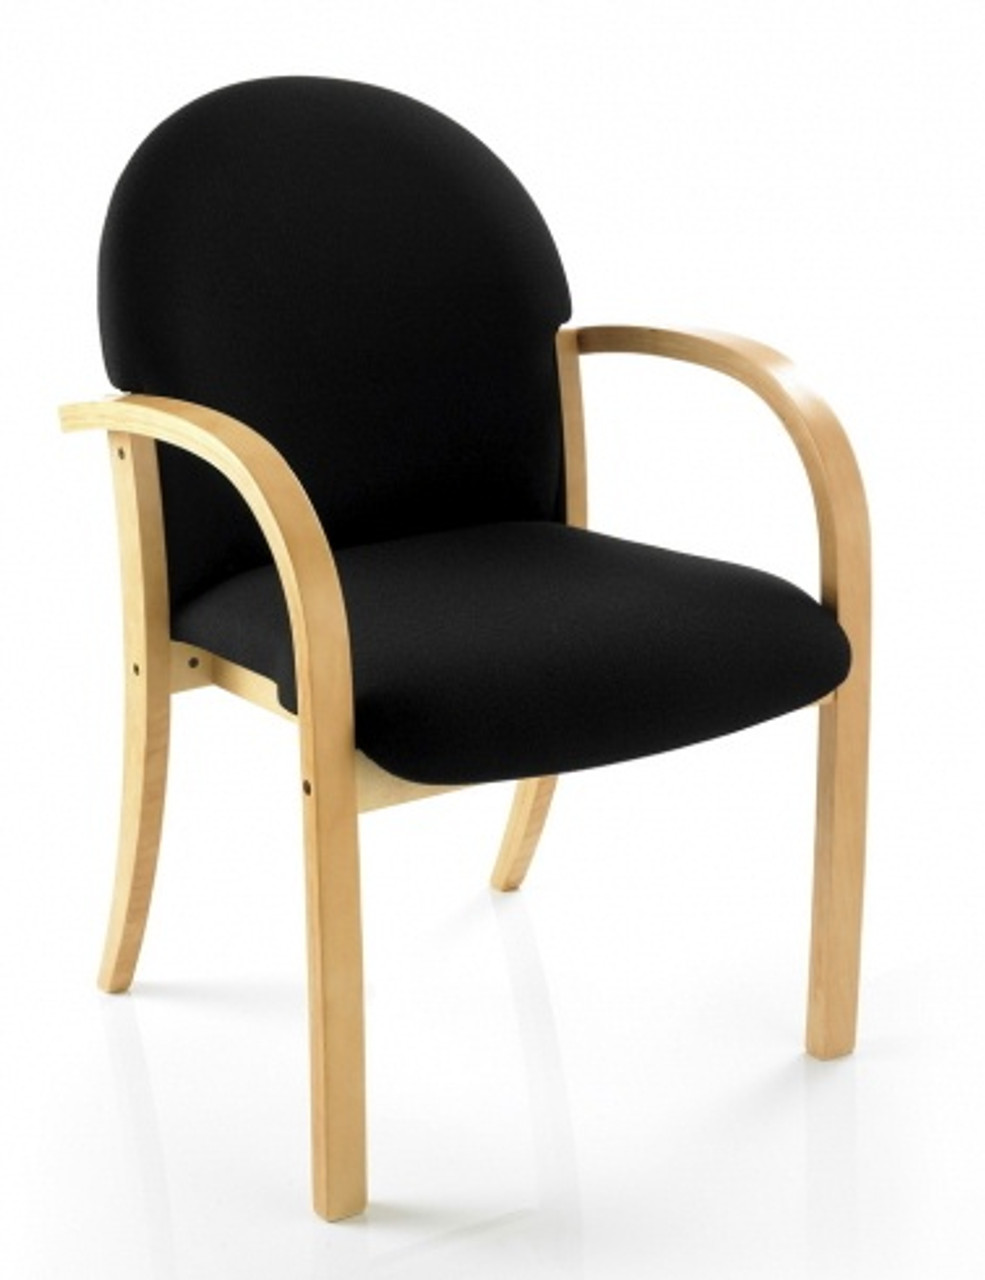 OR5 - Conference chair